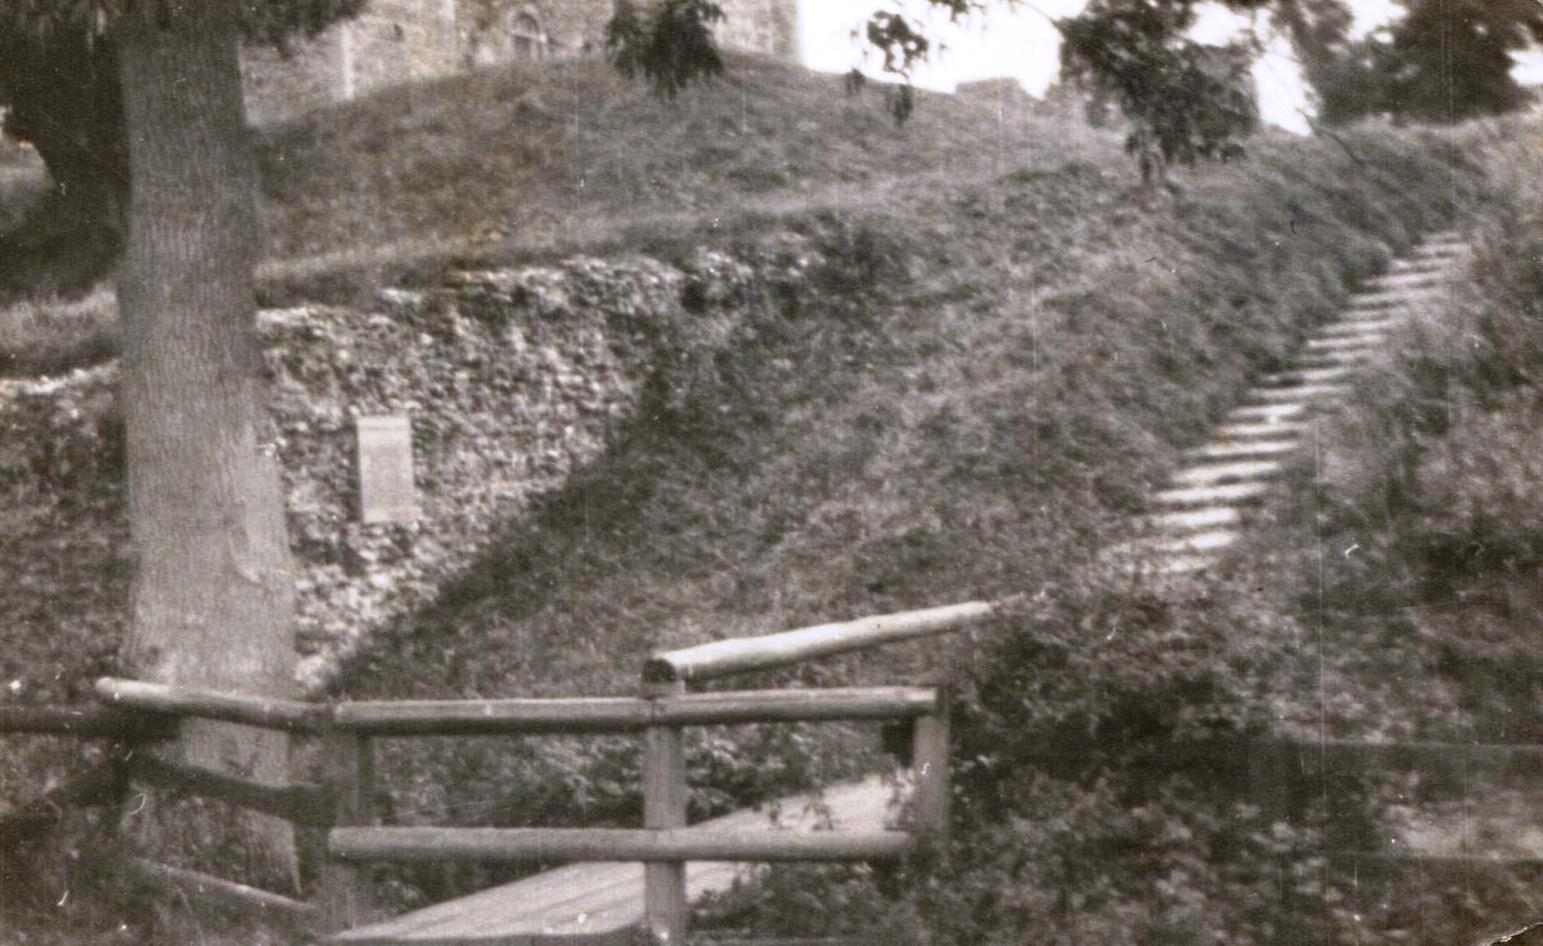 Steps leading from the meres